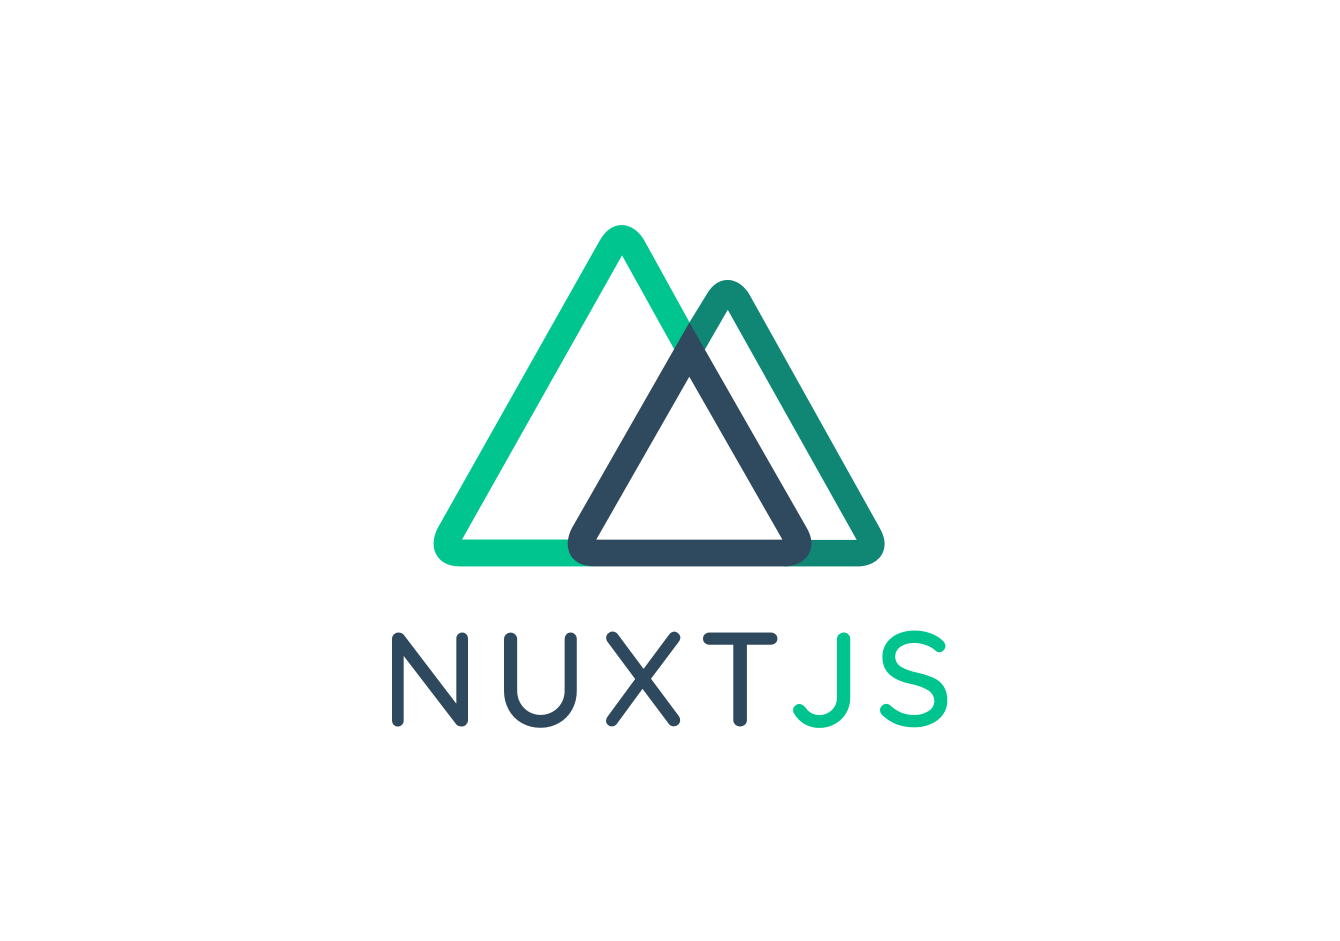 Some powerful reasons when using Nuxt.js for your site